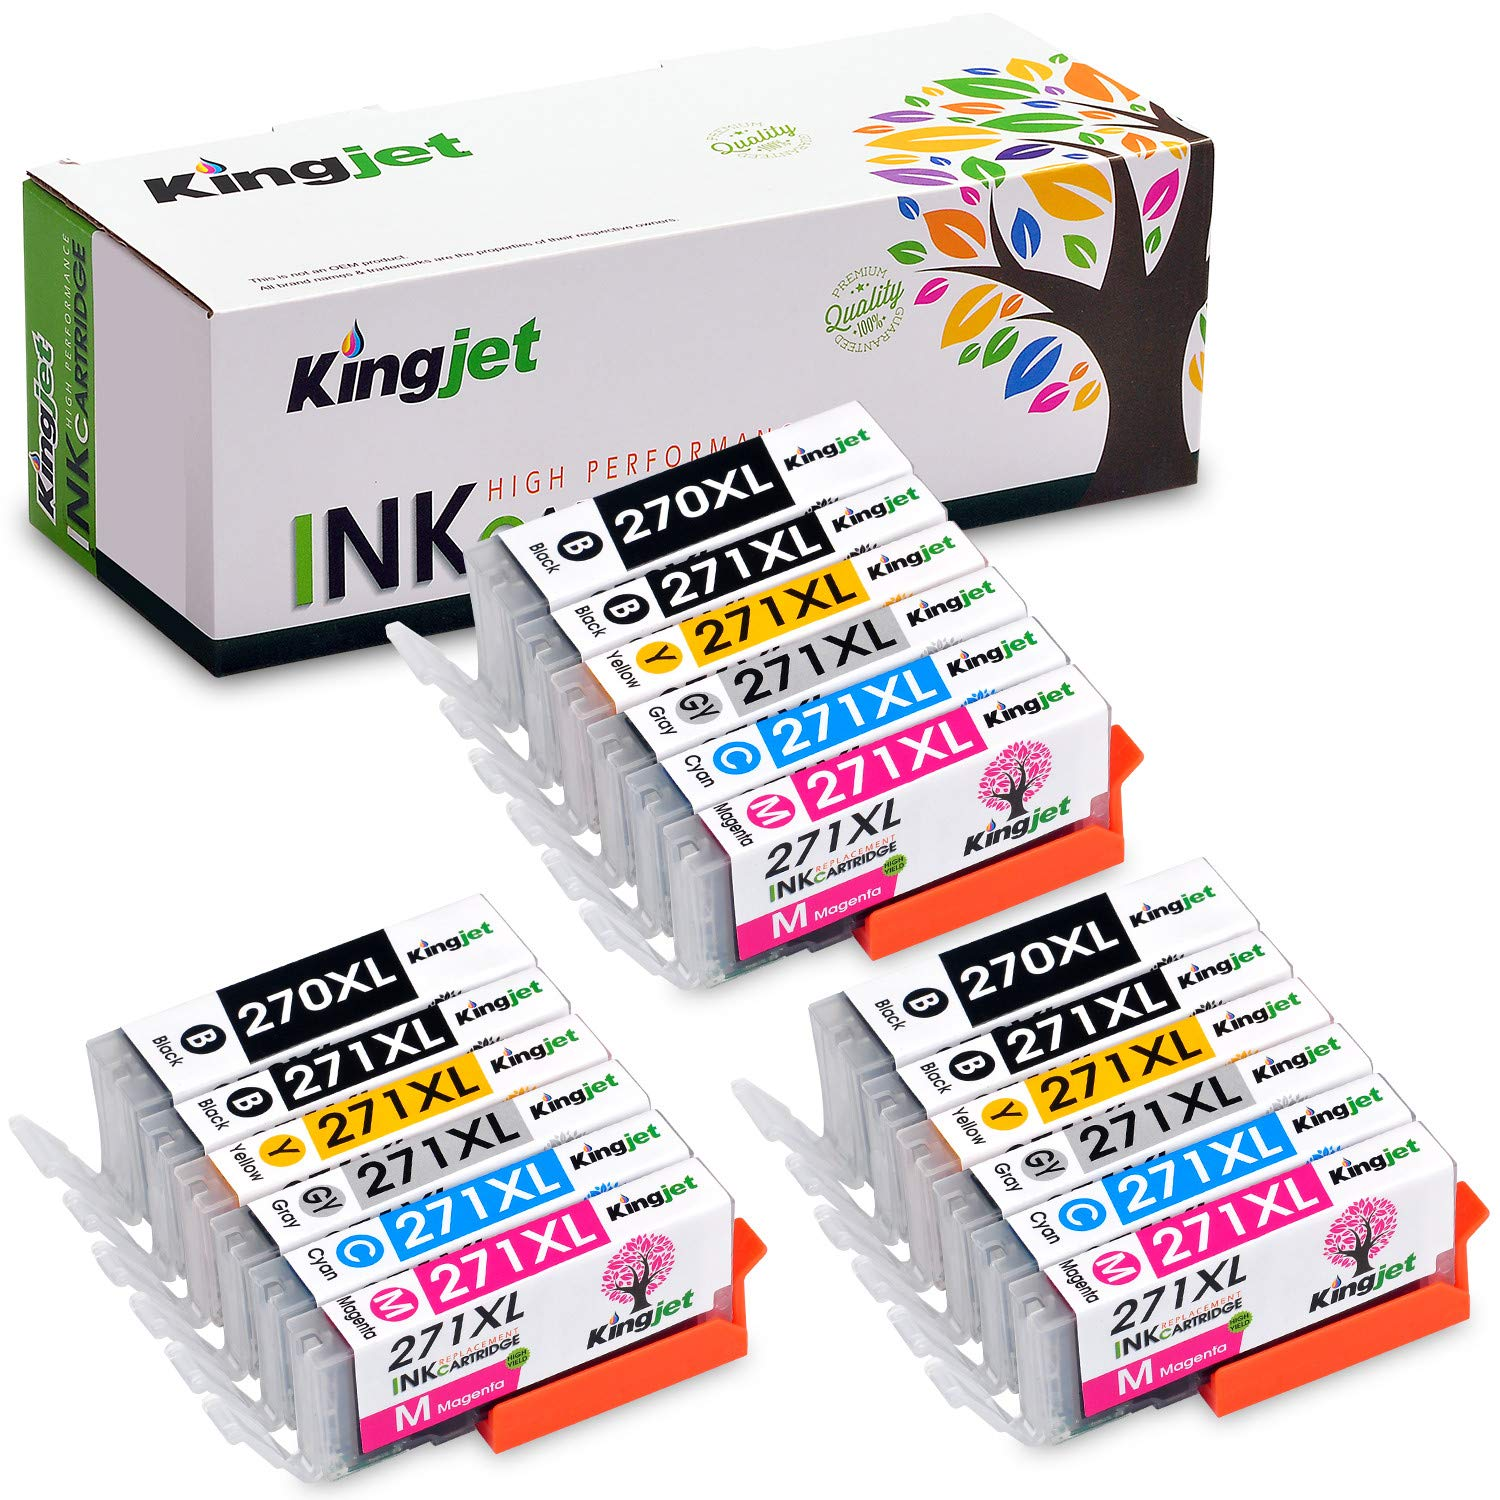 Kingjet Compatible Replacements for PGI-270 CLI-271, PGI-270XL CLI-271XL Ink Cartridges, 3 Sets High Yield Replacements with Gray Ink (6 Color) for Pixma MG7720 TS8020 TS9020 Printer